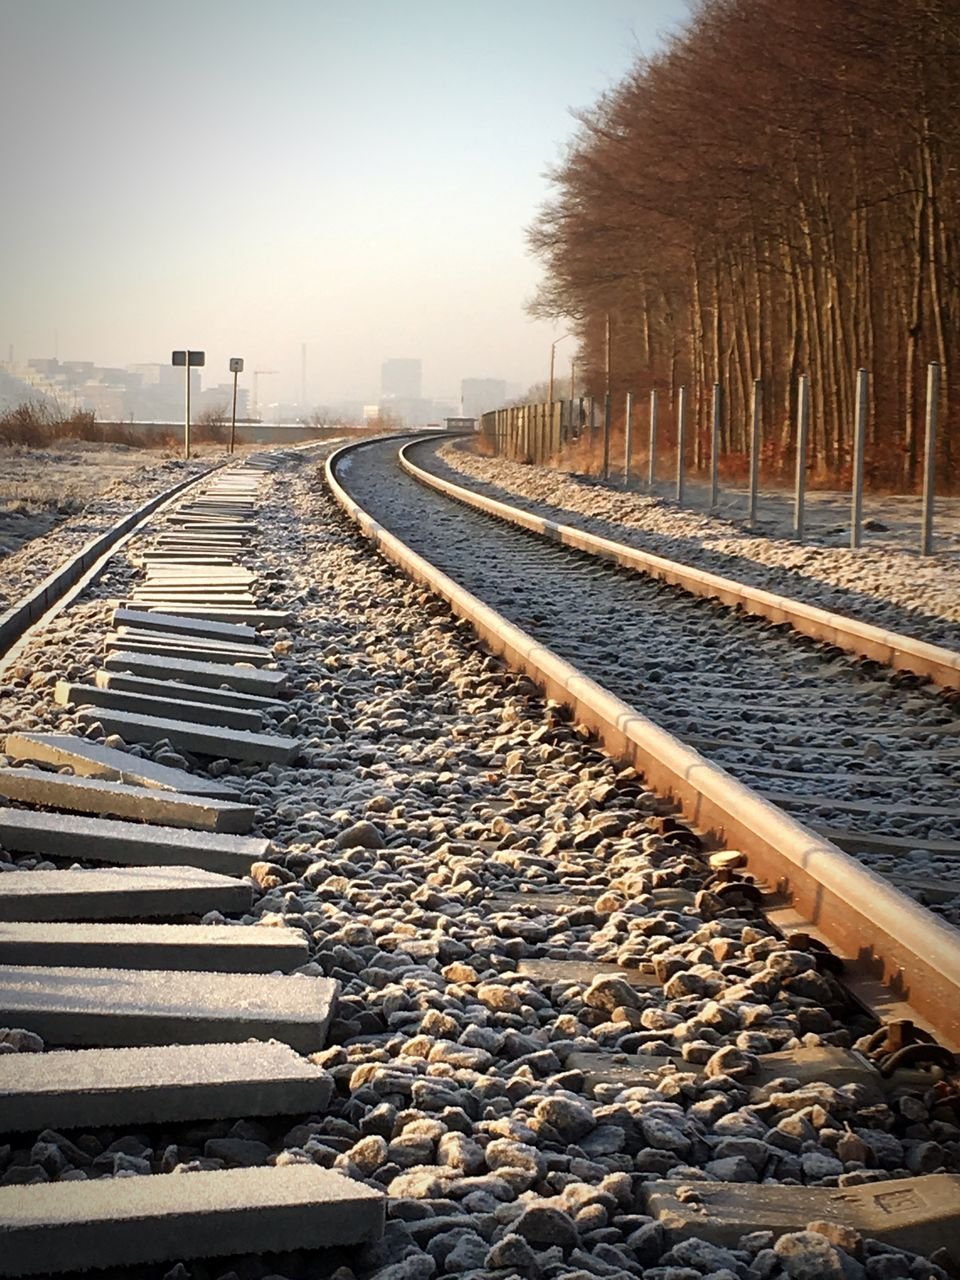 rail transportation, track, railroad track, transportation, nature, direction, tree, the way forward, no people, day, sky, solid, diminishing perspective, plant, gravel, rock, railroad tie, stone - object, in a row, cold temperature, outdoors, long, pebble